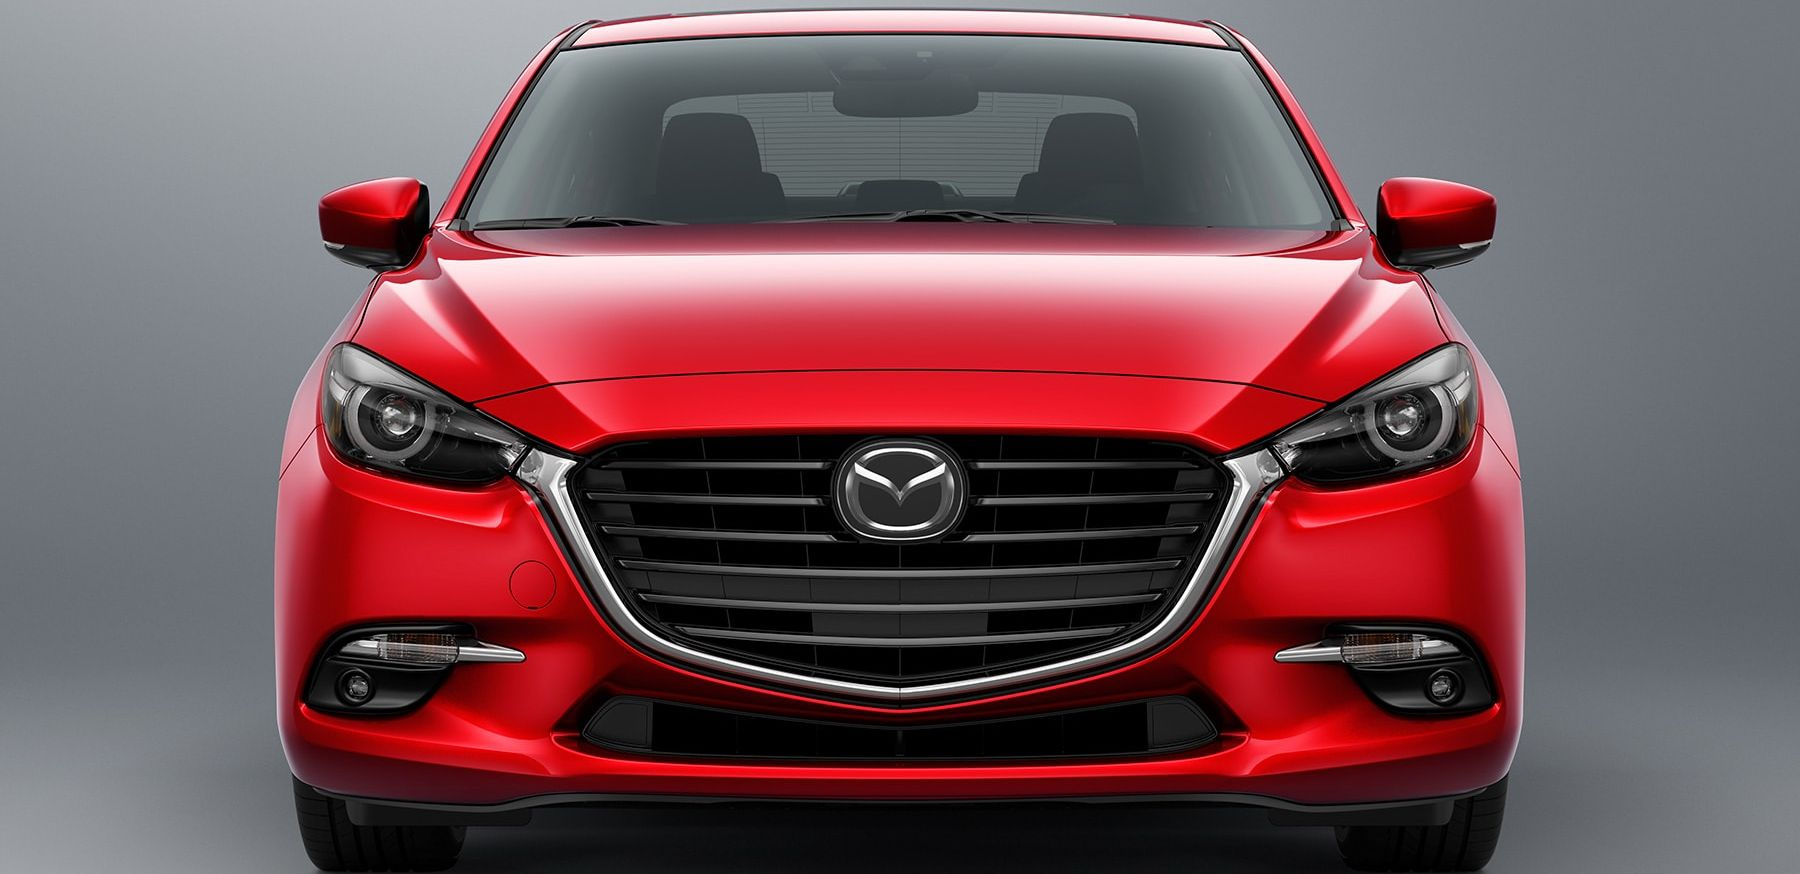 Mazda 3 Owners Manual: Immobilizer System